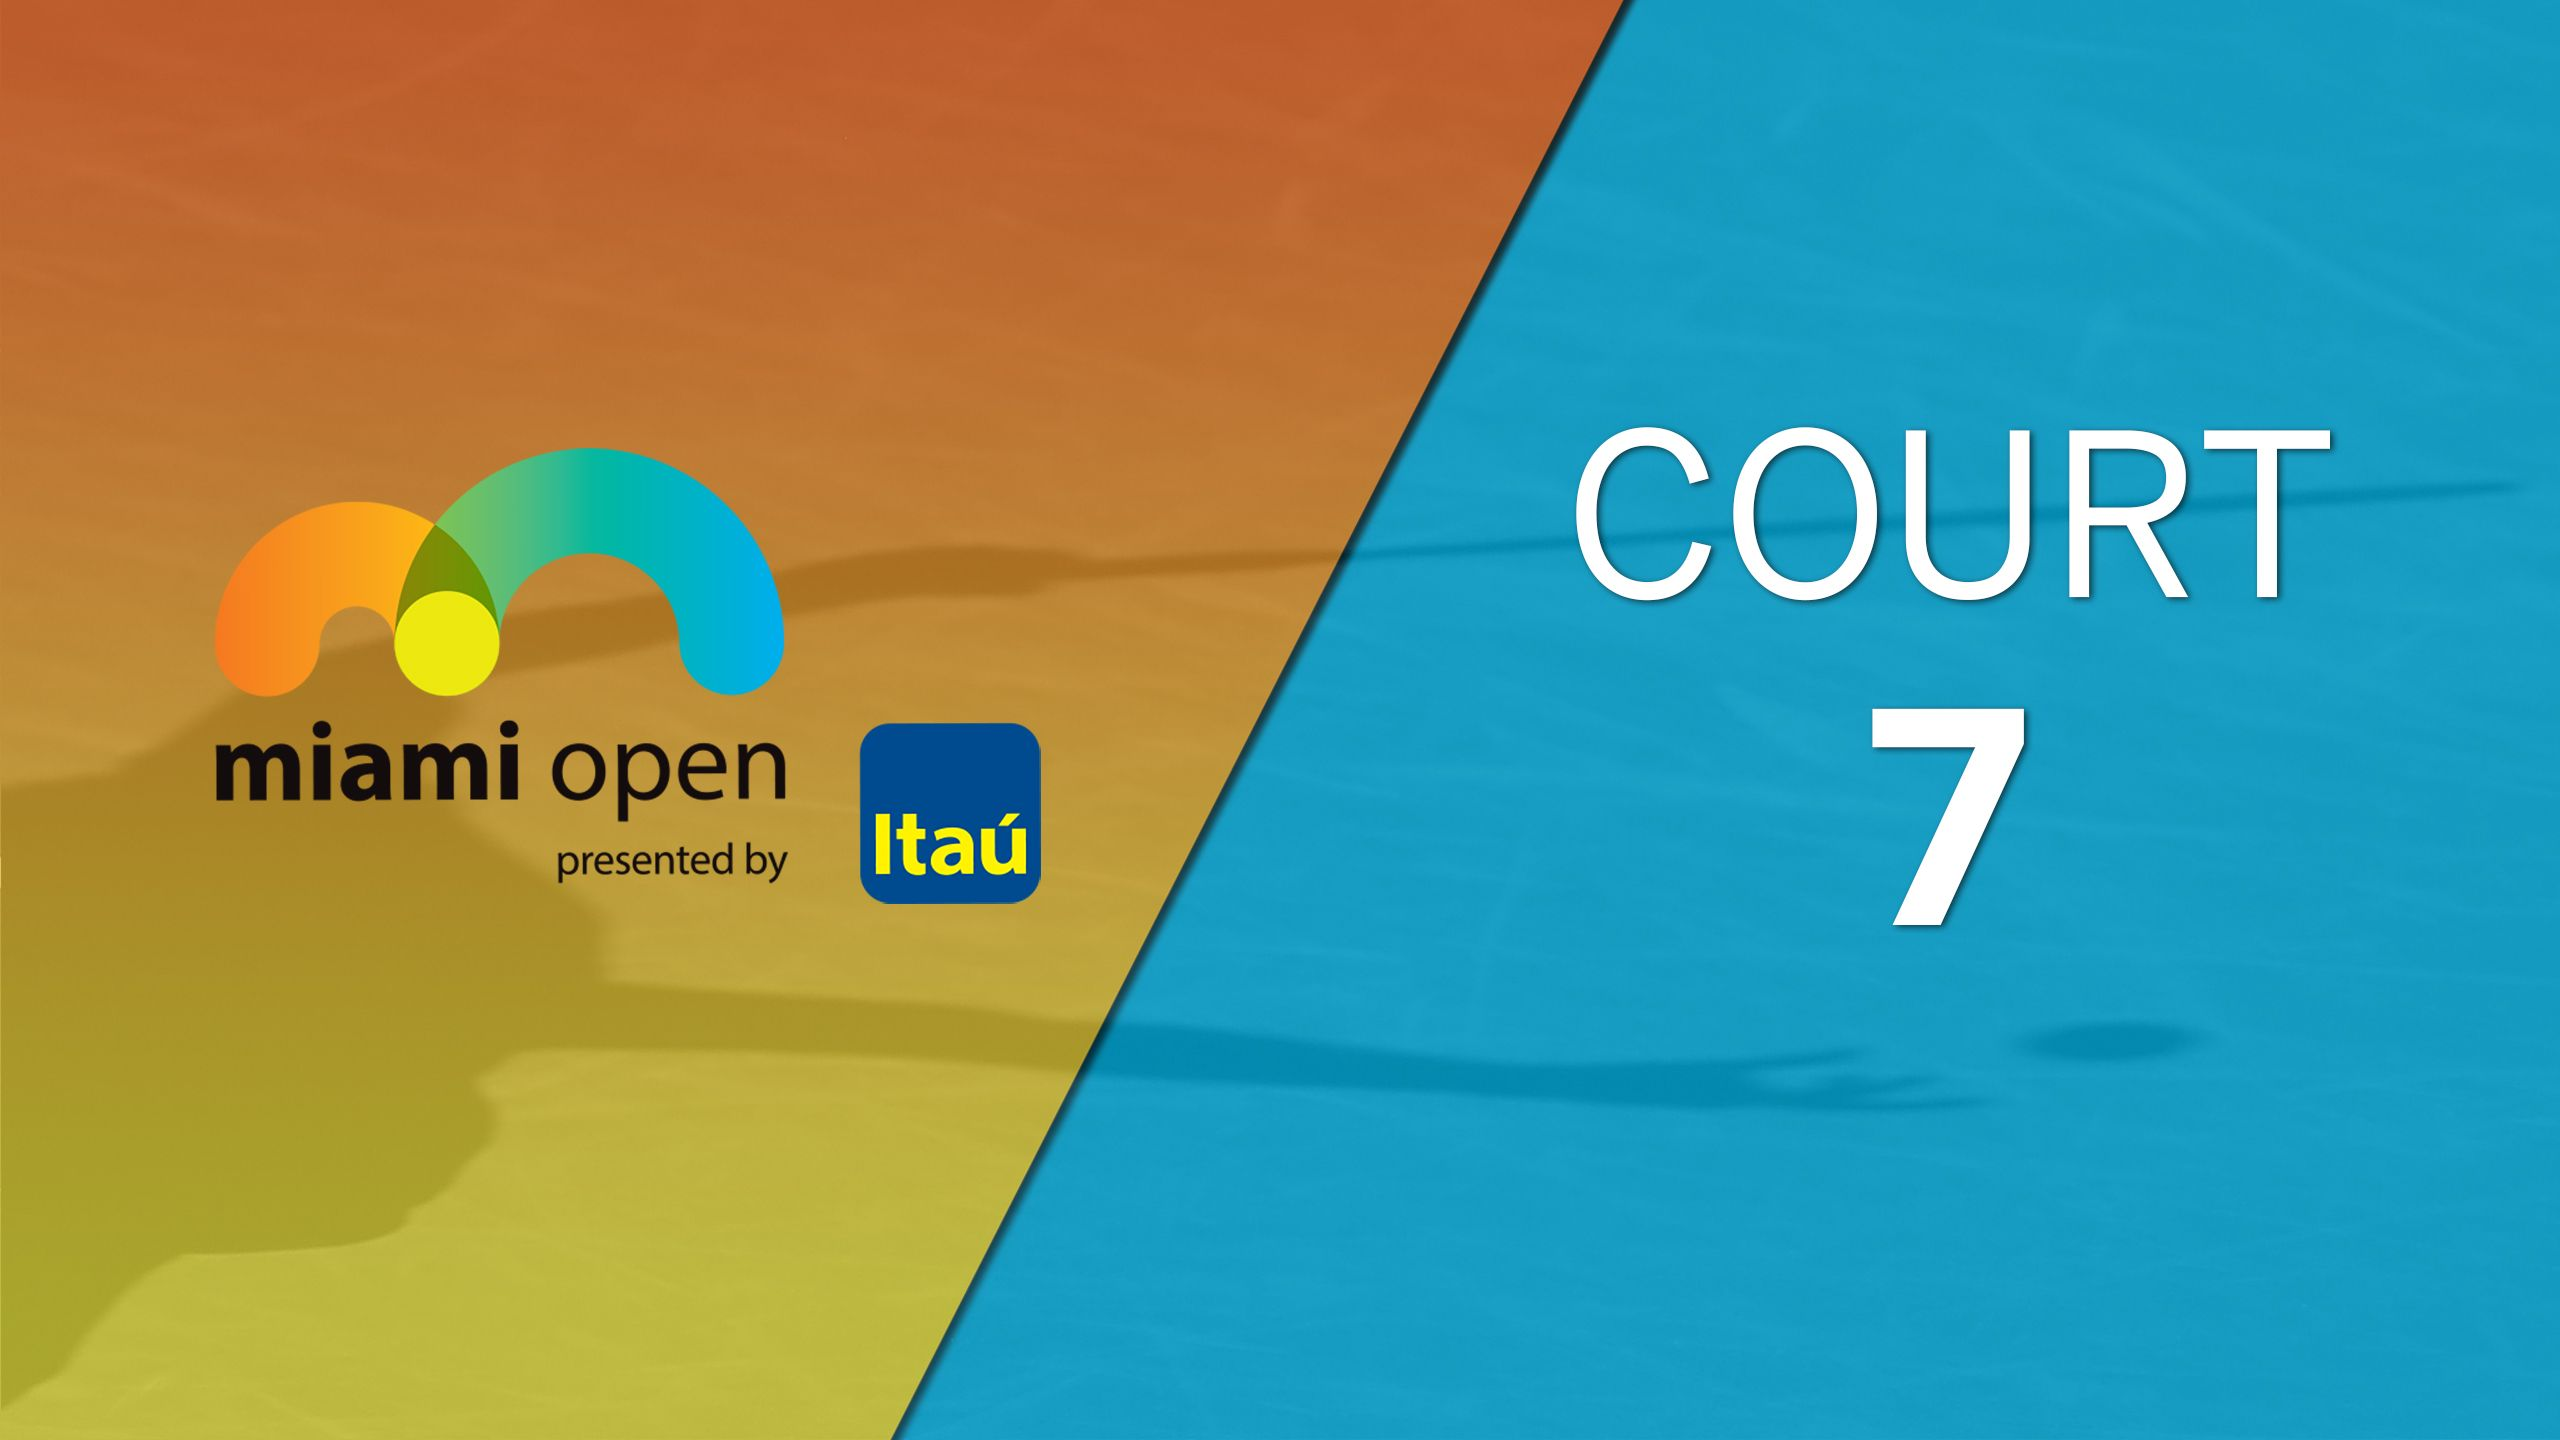 Miami Open - Court 7 (Second Round)